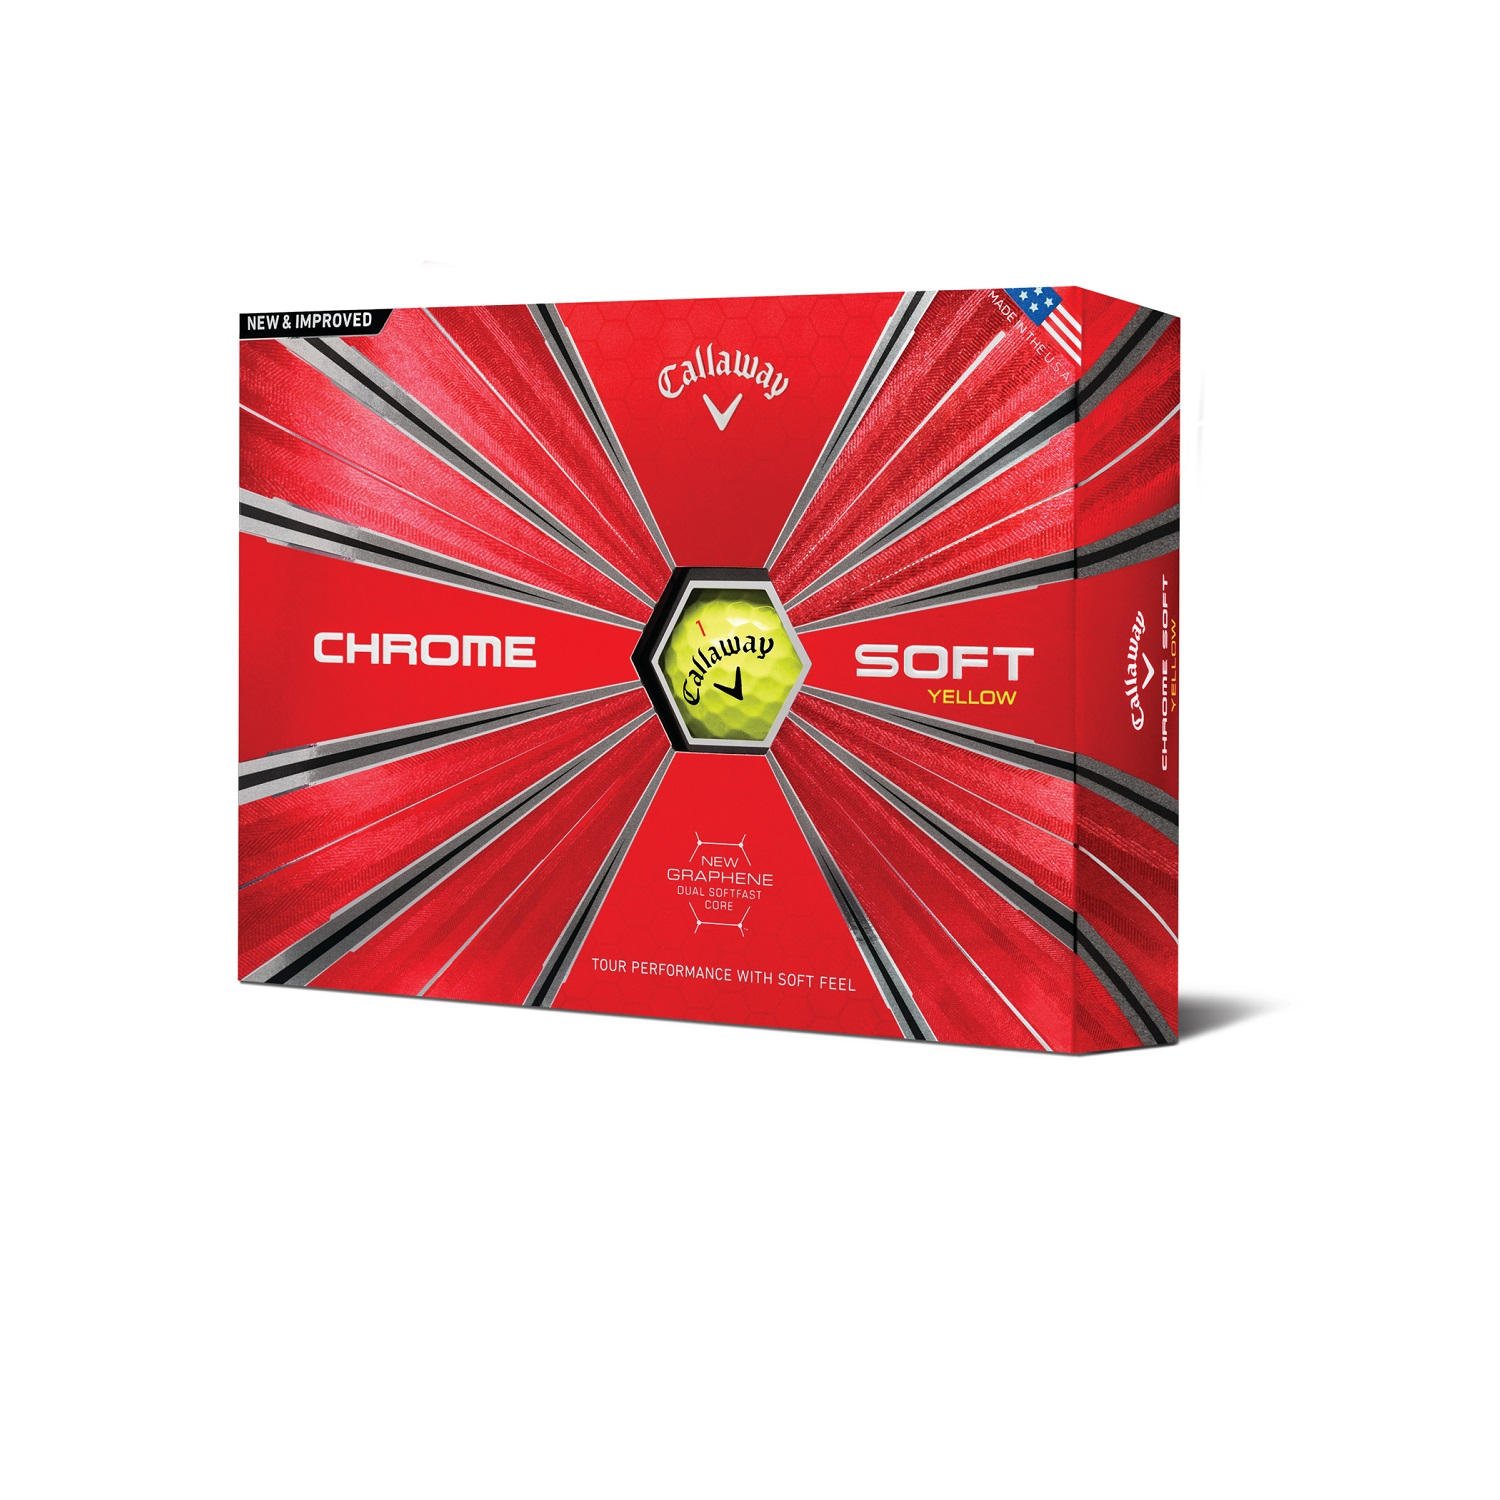 Callaway Chrome Soft 18 Golf ball - 12 Pack Yellow